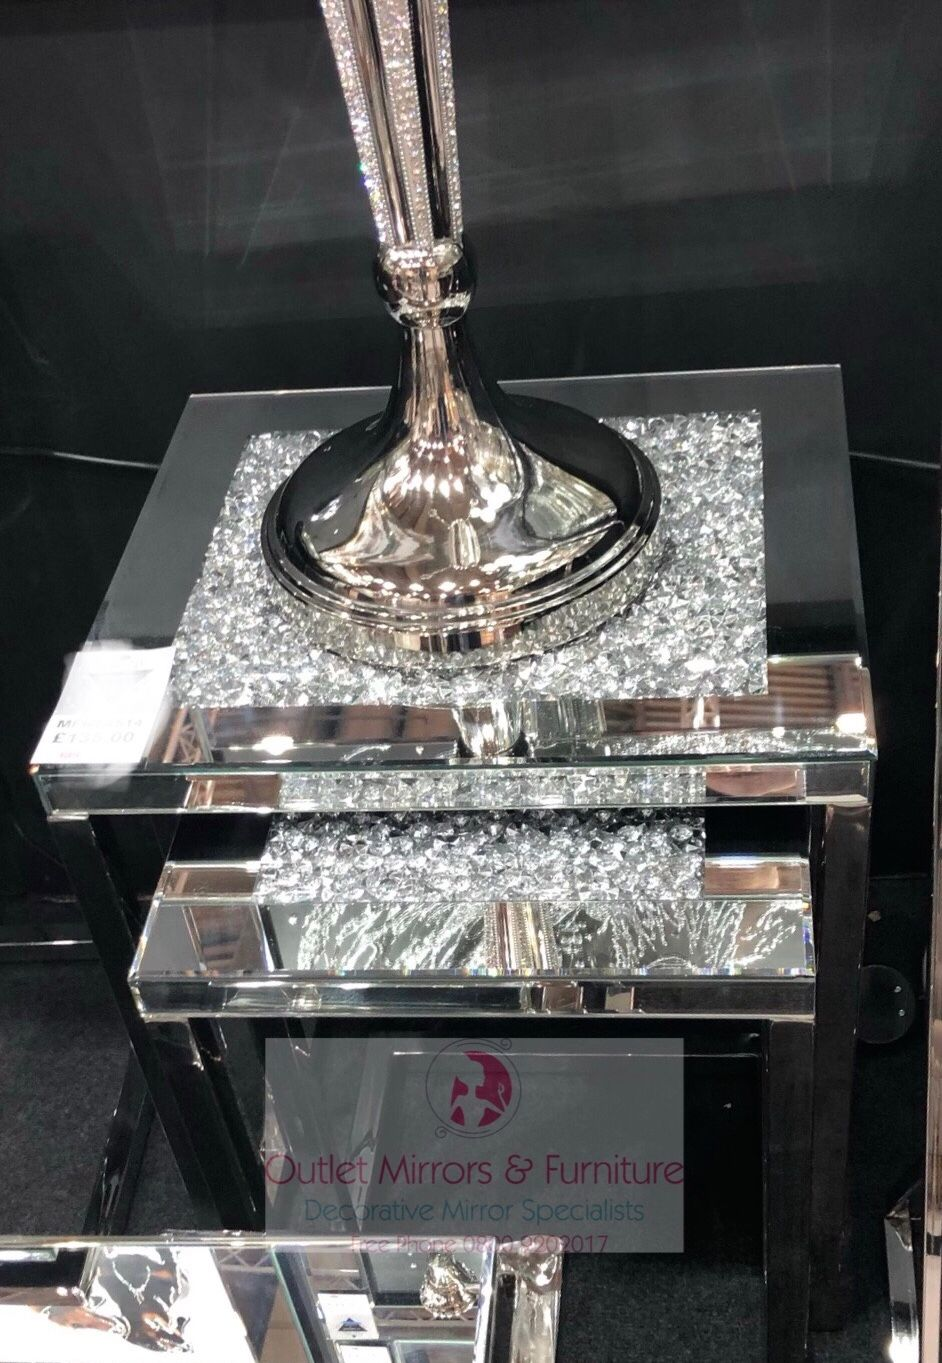 * New Diamond Crush Crystal Sparkle Nesting Tables with Silver Chrome base